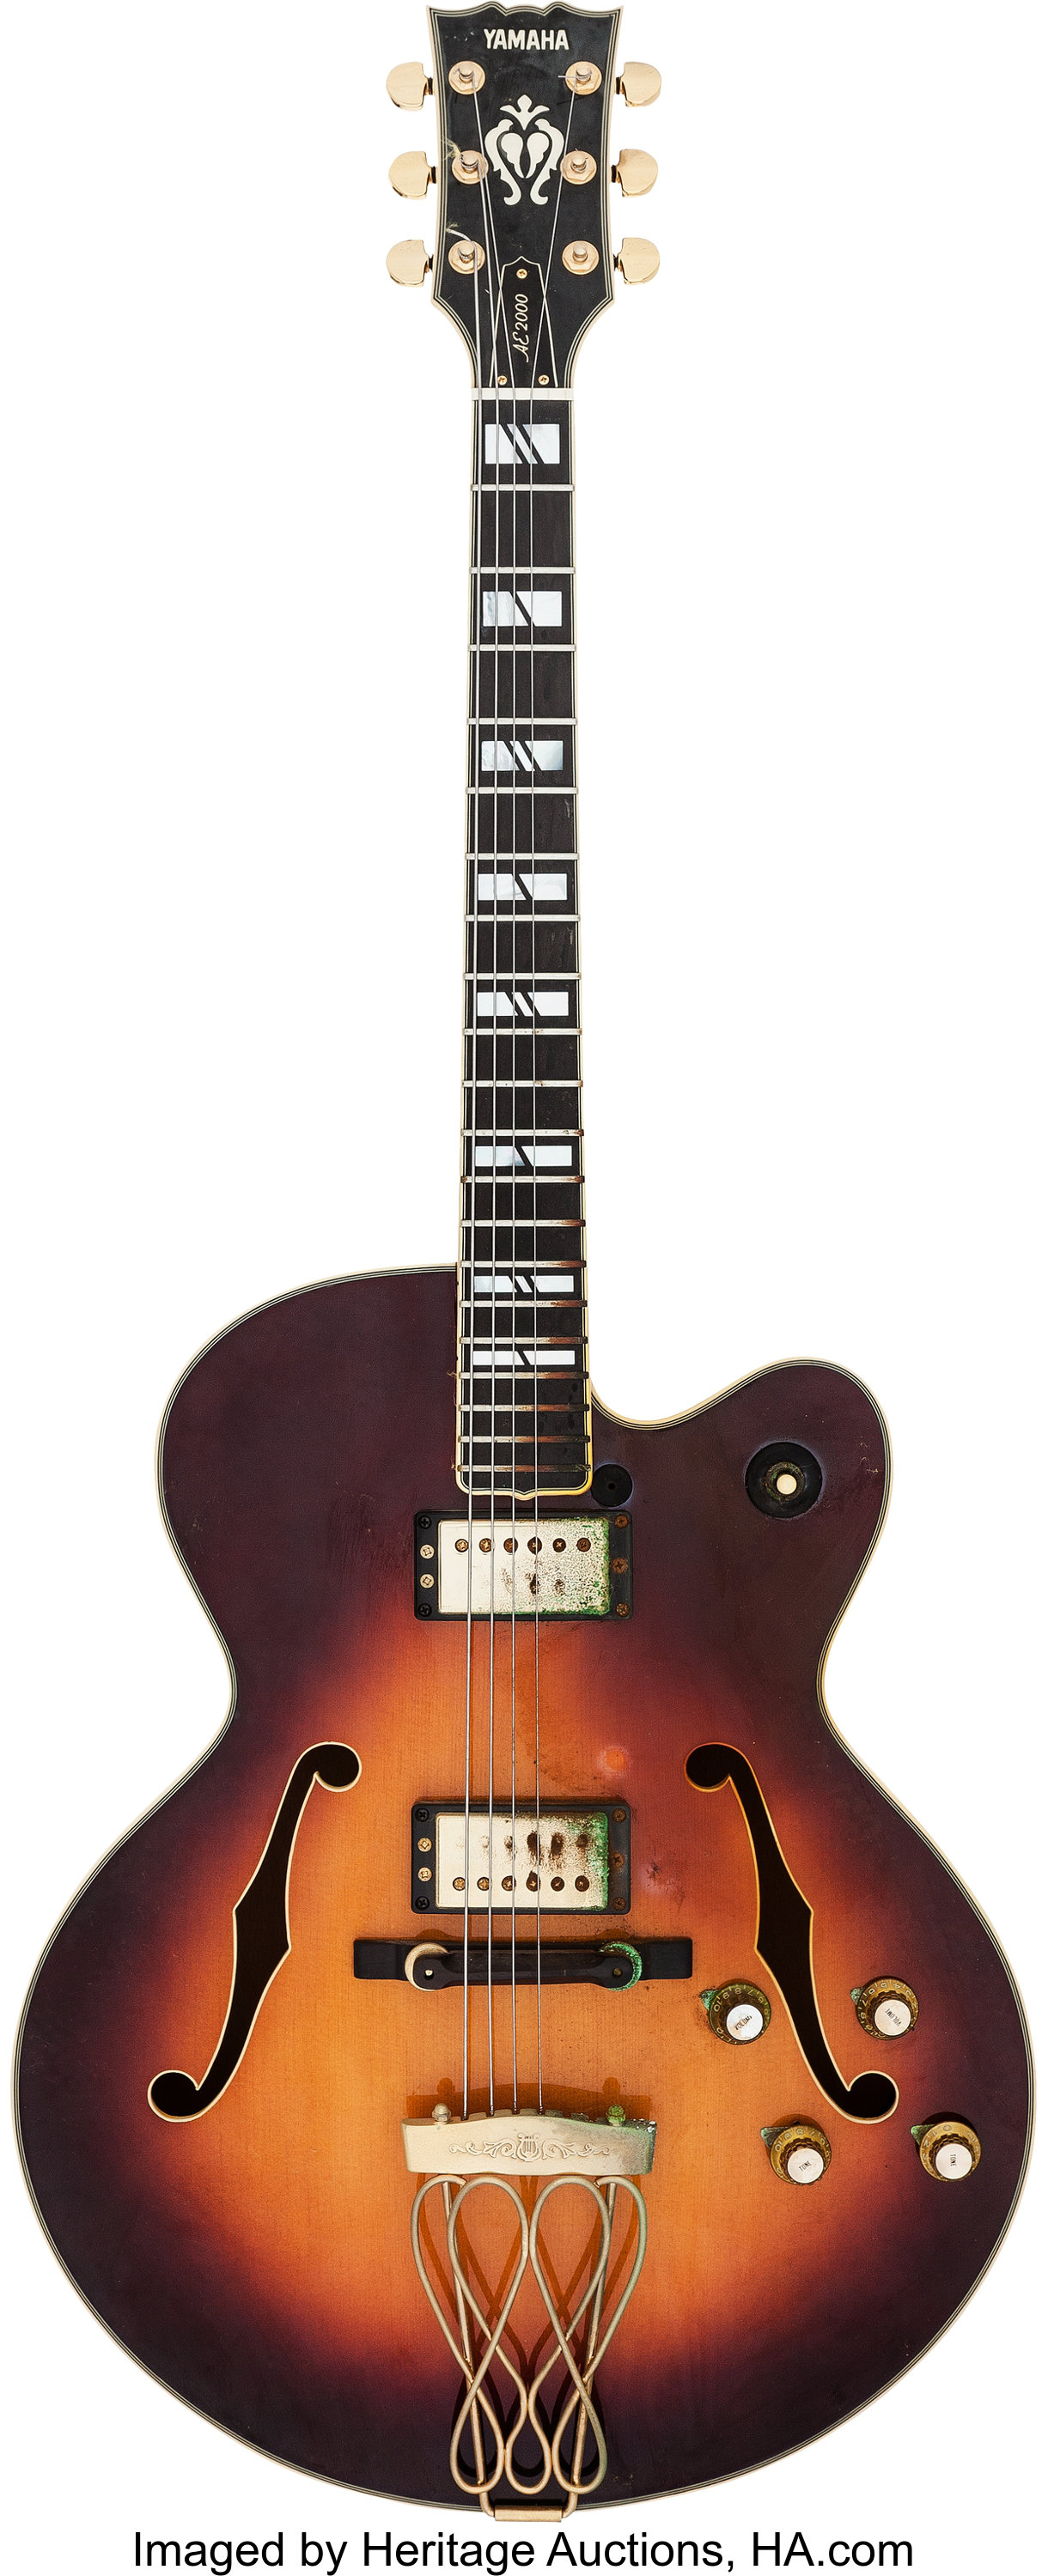 where is yamaha guitar serial number